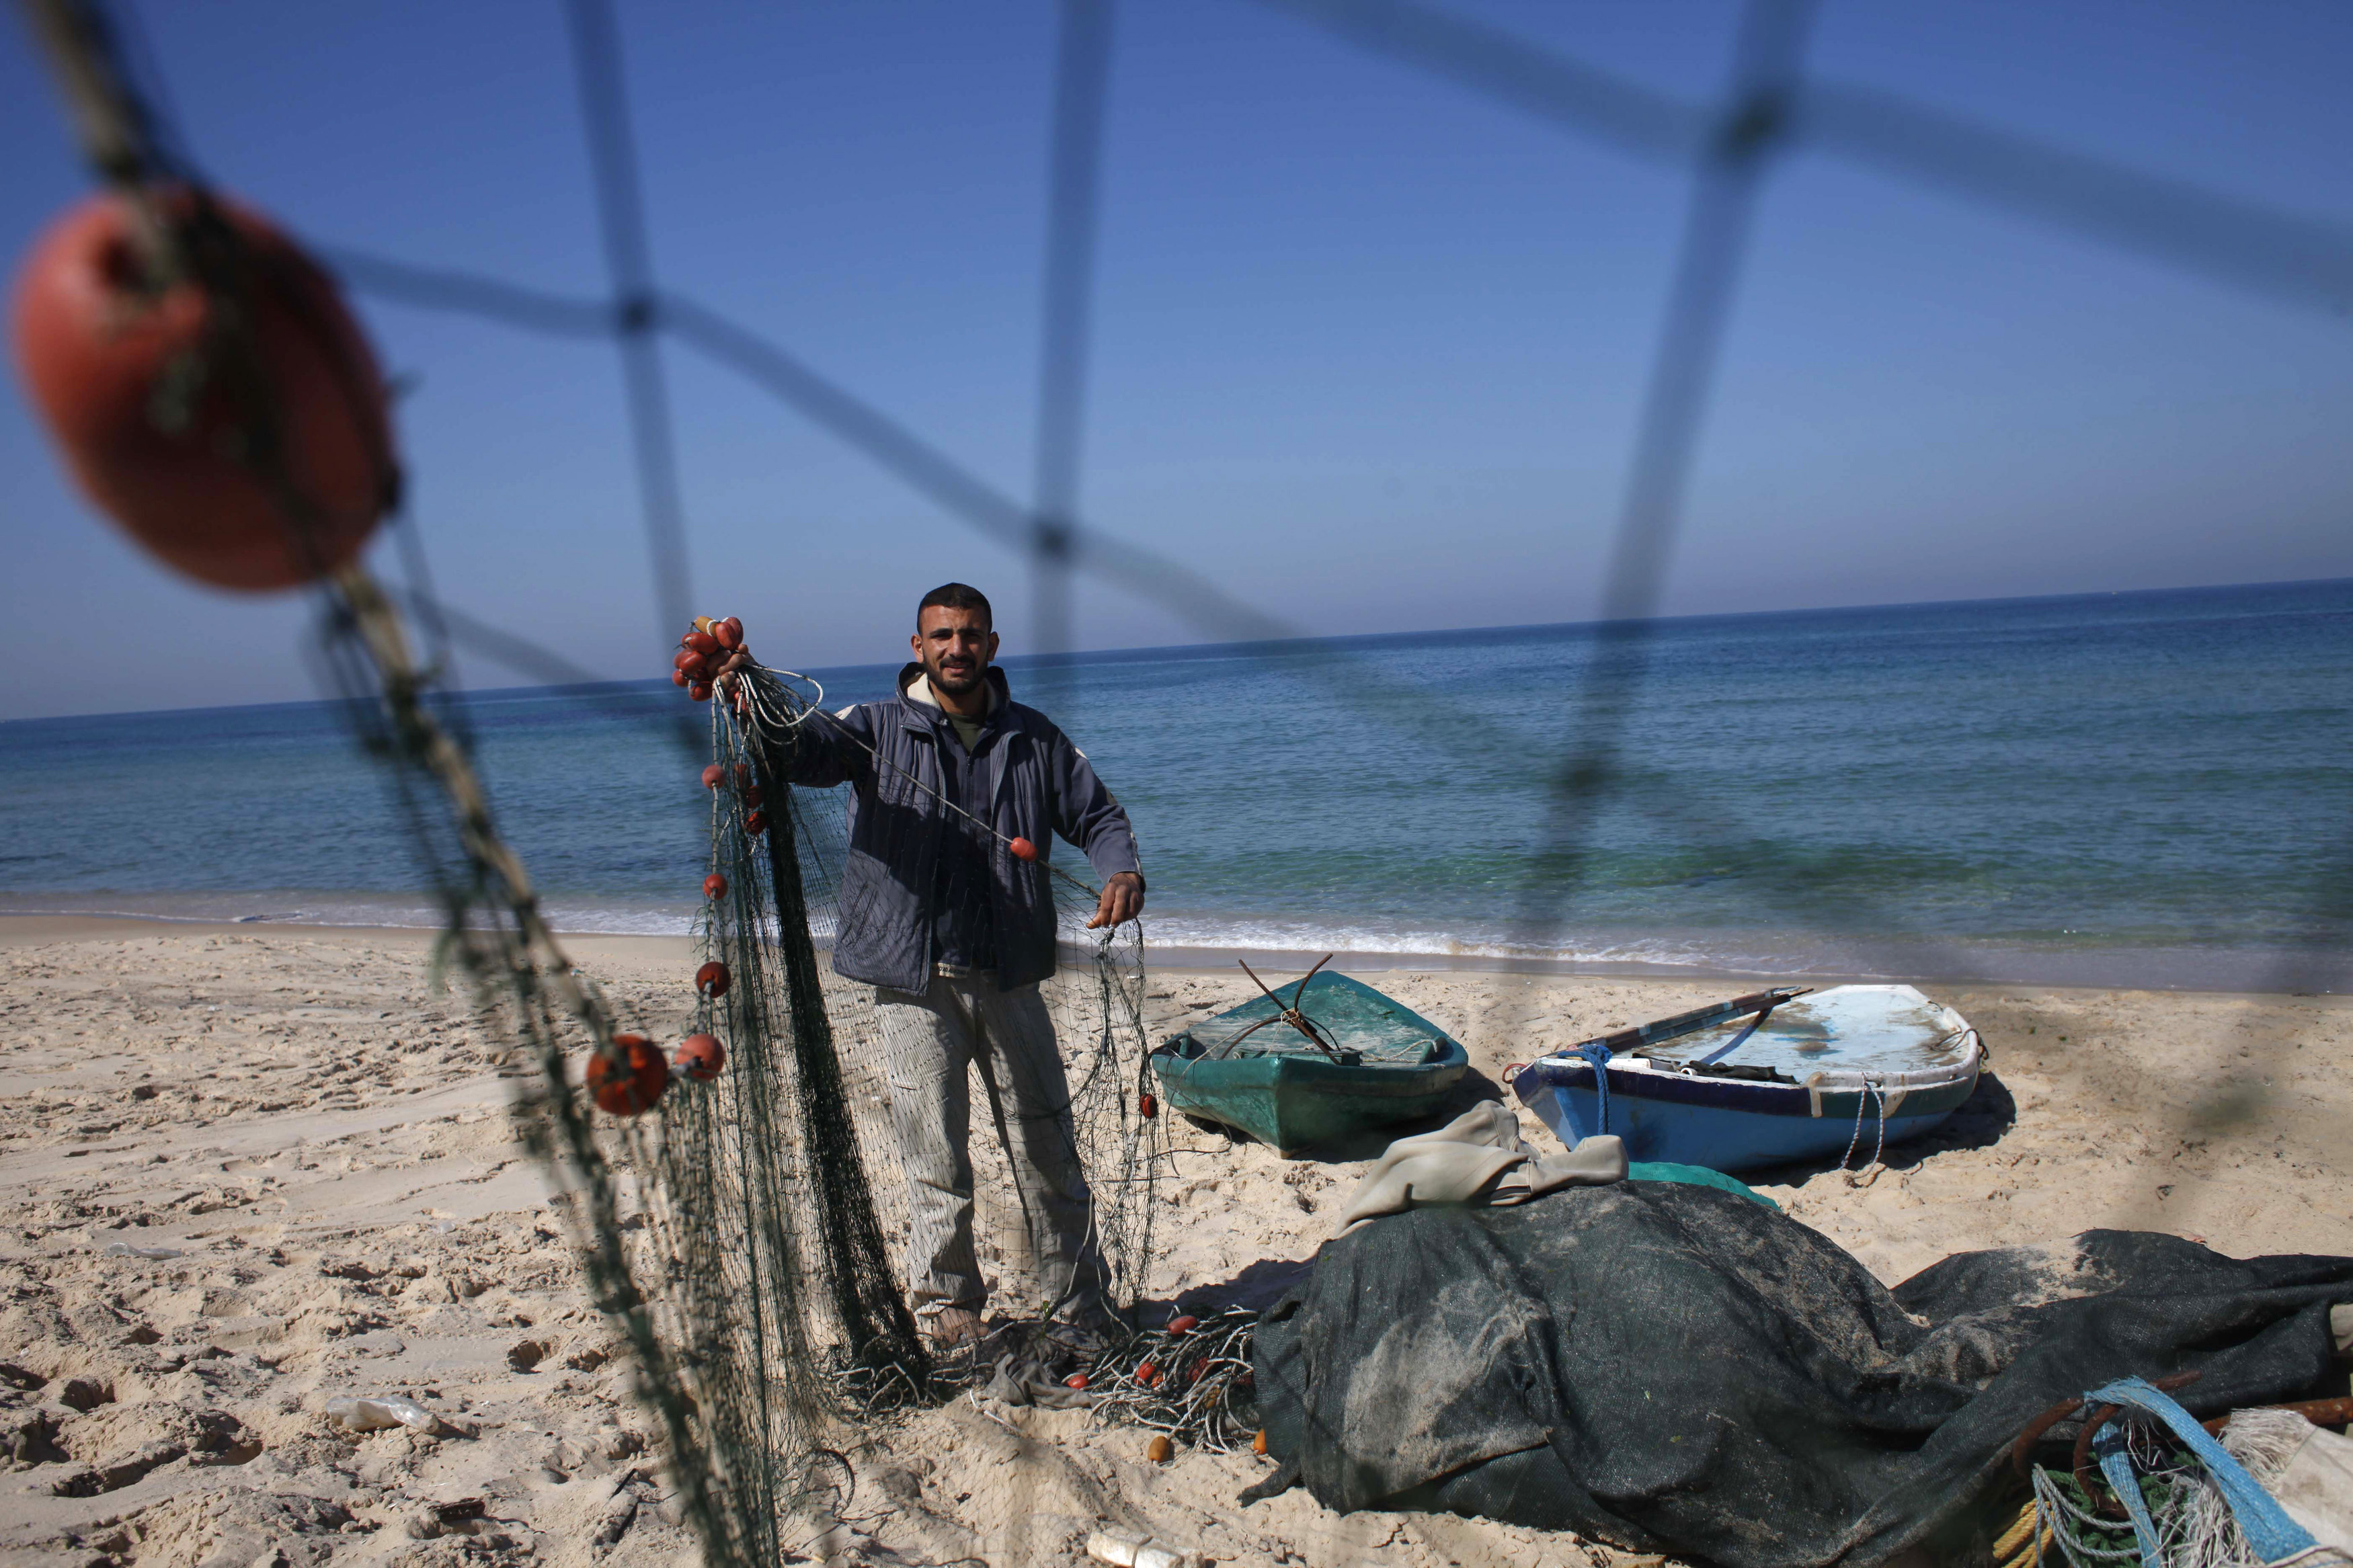 Palestinian fisherman Joudat Ghrab, who said he scooped a 500-kg bronze statue of the Greek God Apollo from the sea bed last August, prepares his fishing net on the beach of Deir El-Balah in the central Gaza Strip February 9, 2014.